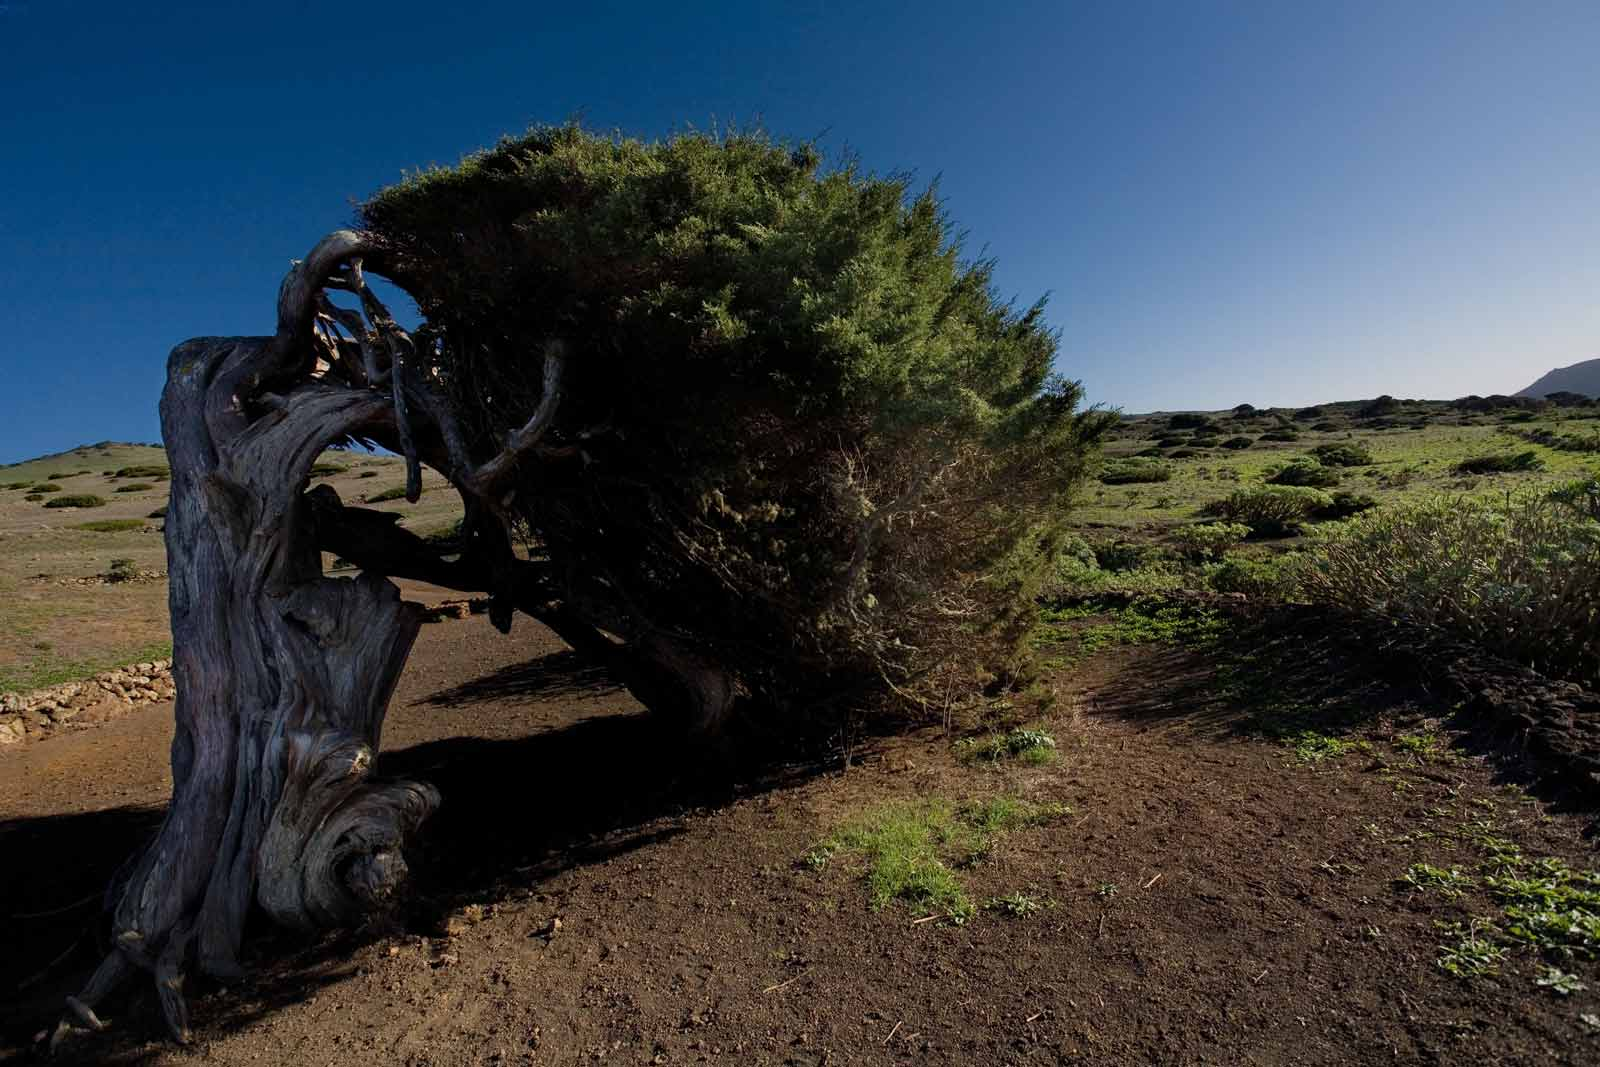 age-old juniper tree (El Hierro)